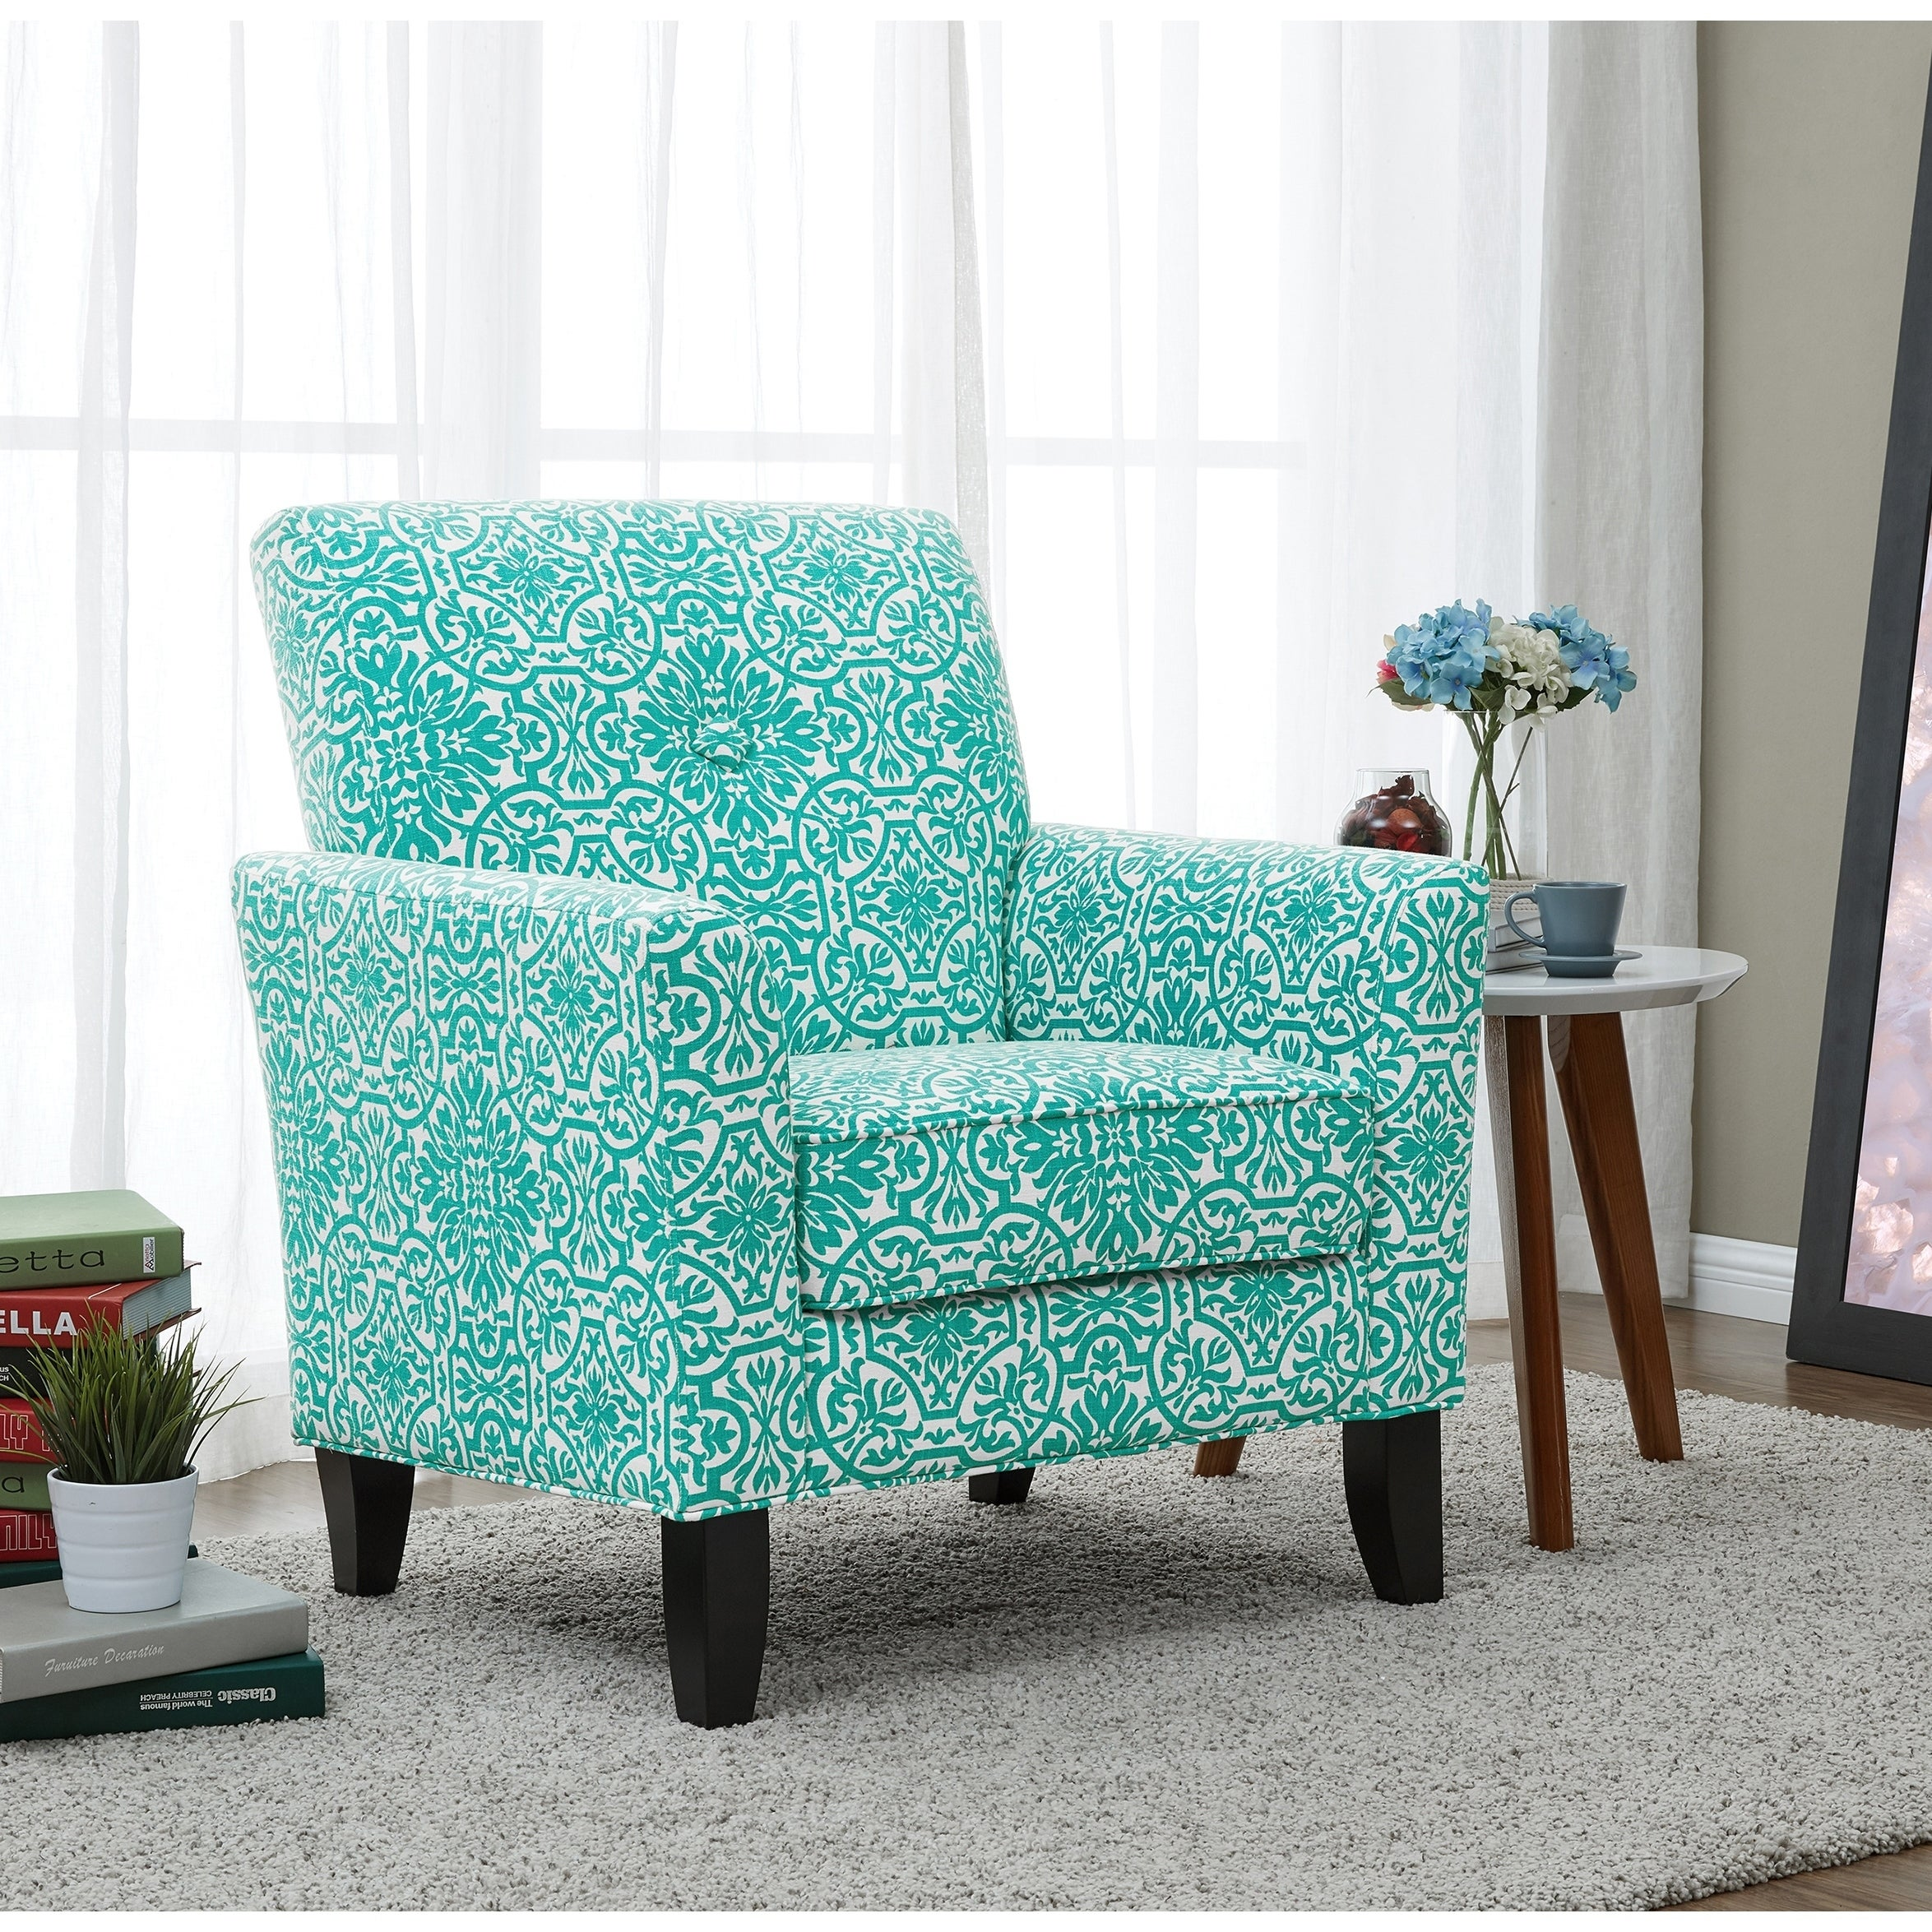 Shop Handy Living Alex Turquoise Damask Arm Chair - On Sale - Free Shipping Today - Overstock.com - 12863436 & Shop Handy Living Alex Turquoise Damask Arm Chair - On Sale - Free ...